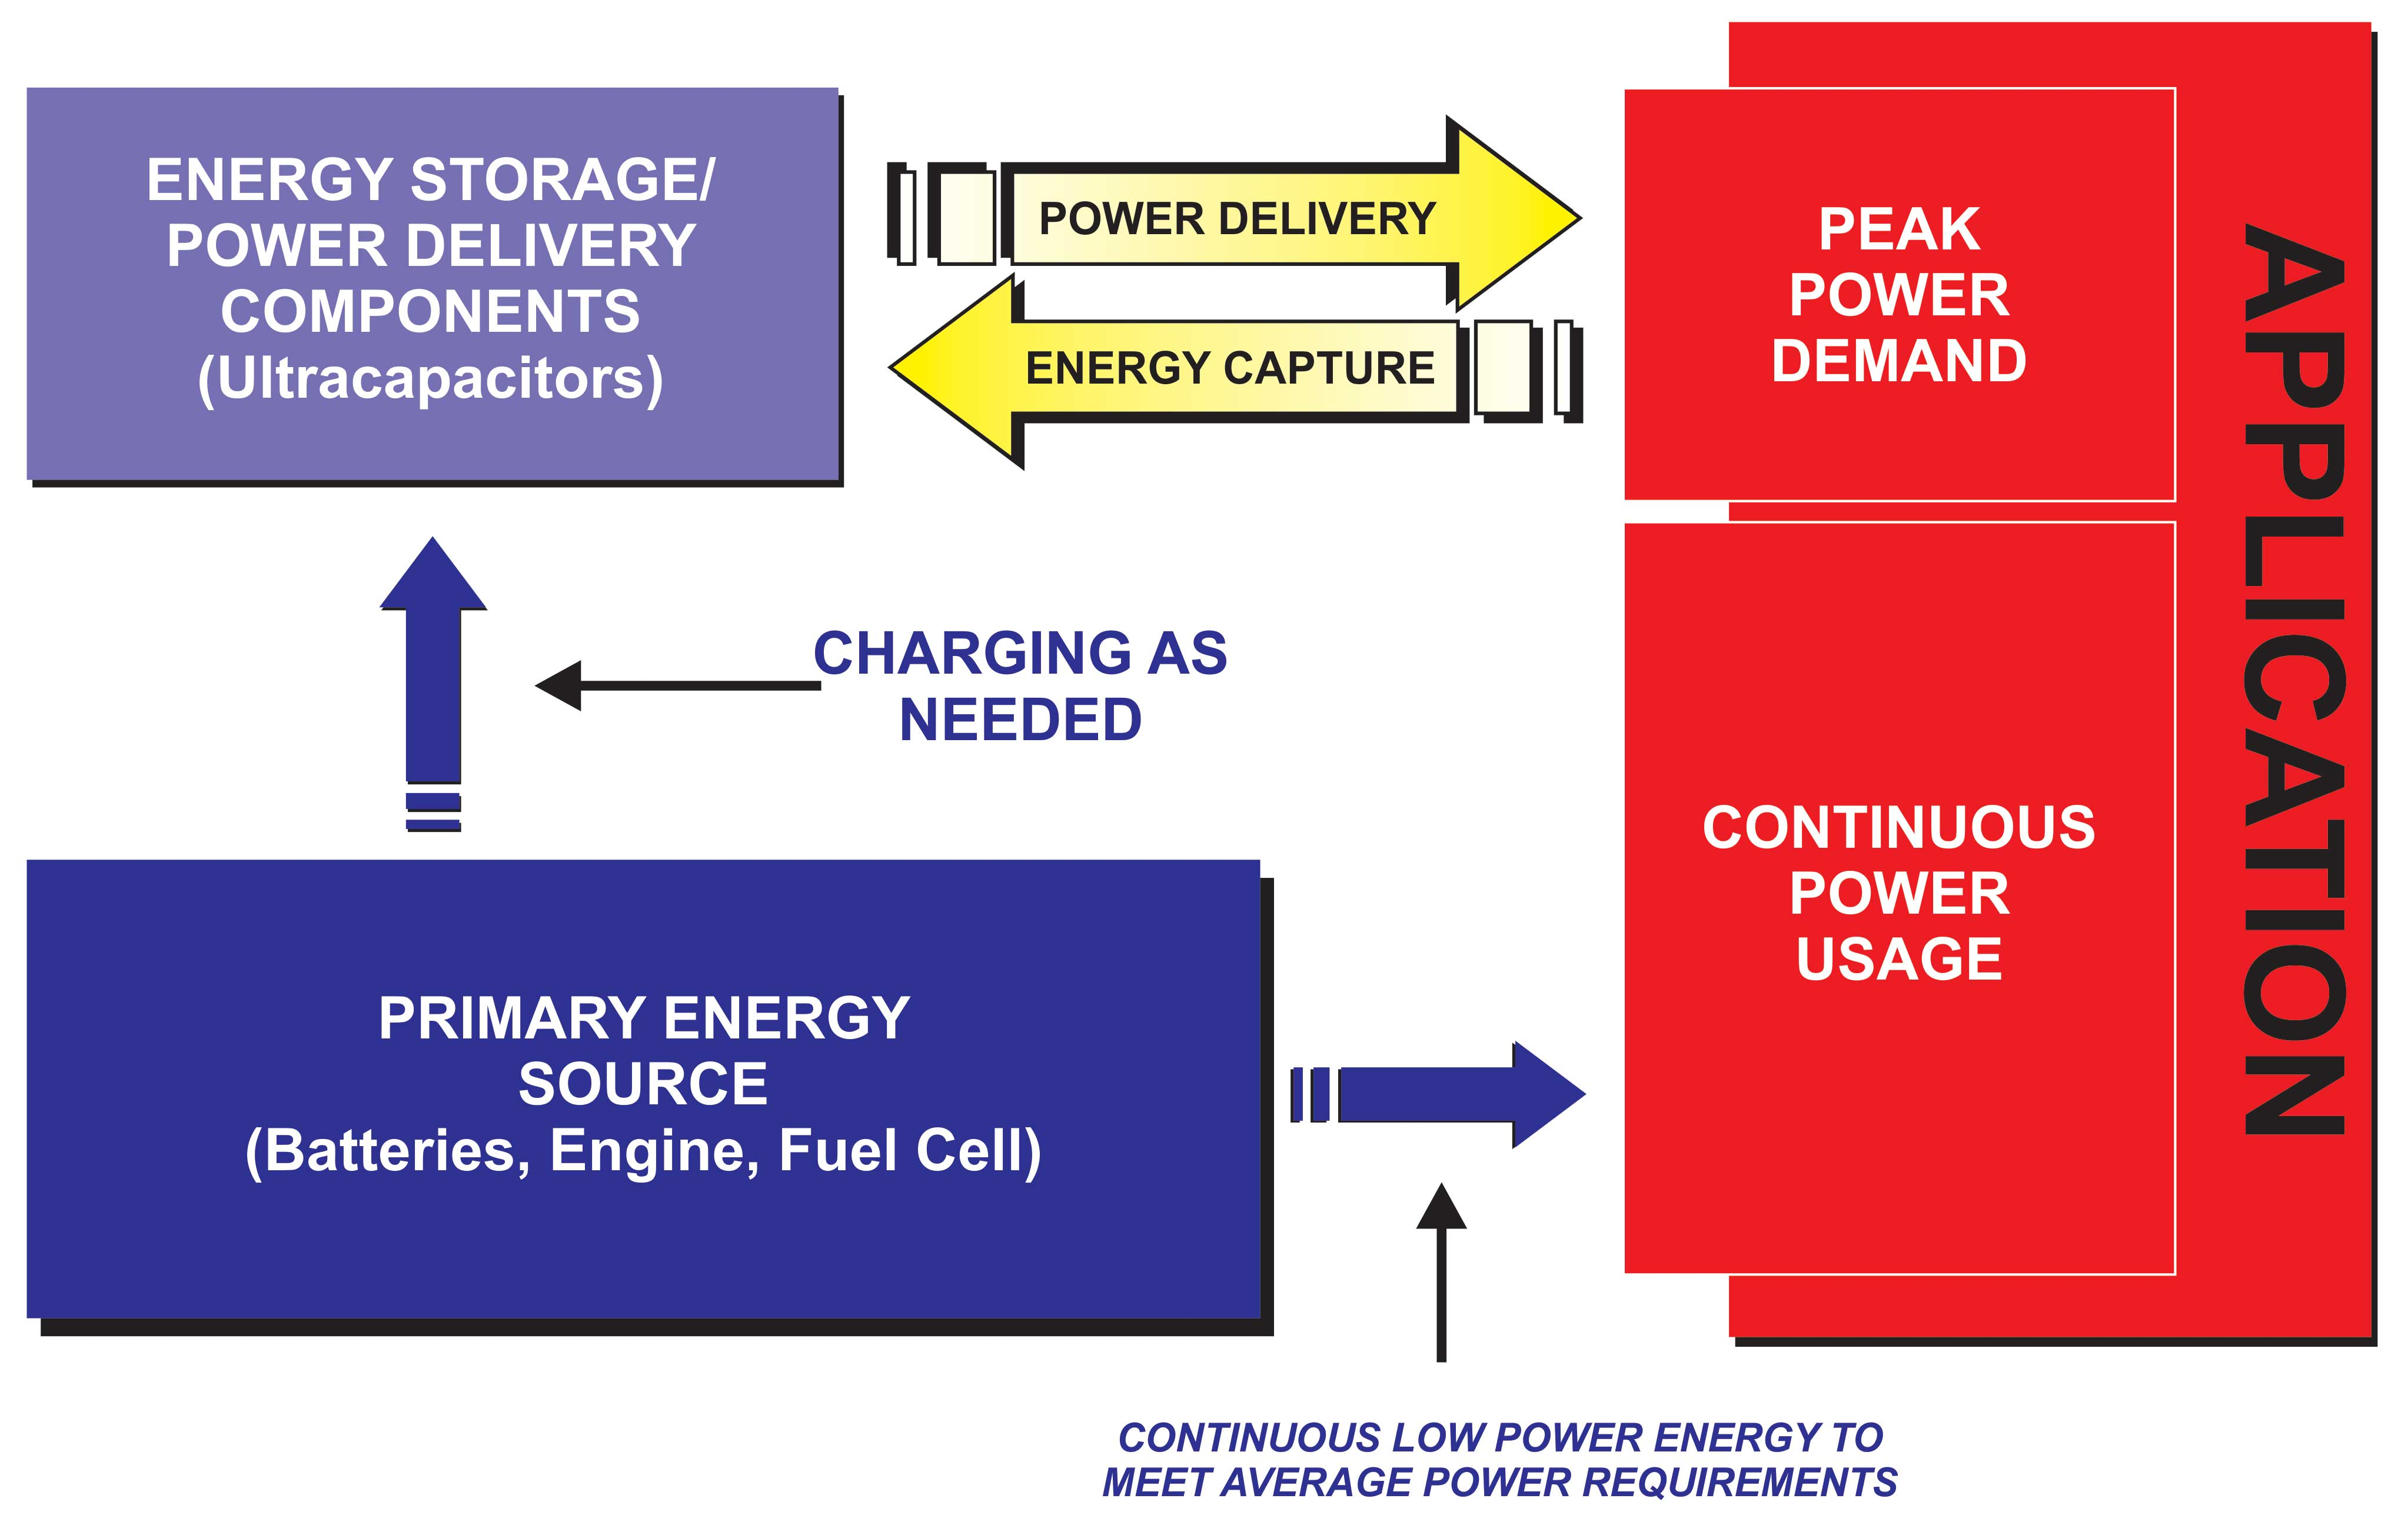 Fig. 2: Ultracapacitor meets short term demand while battery/engine  #C3BA08